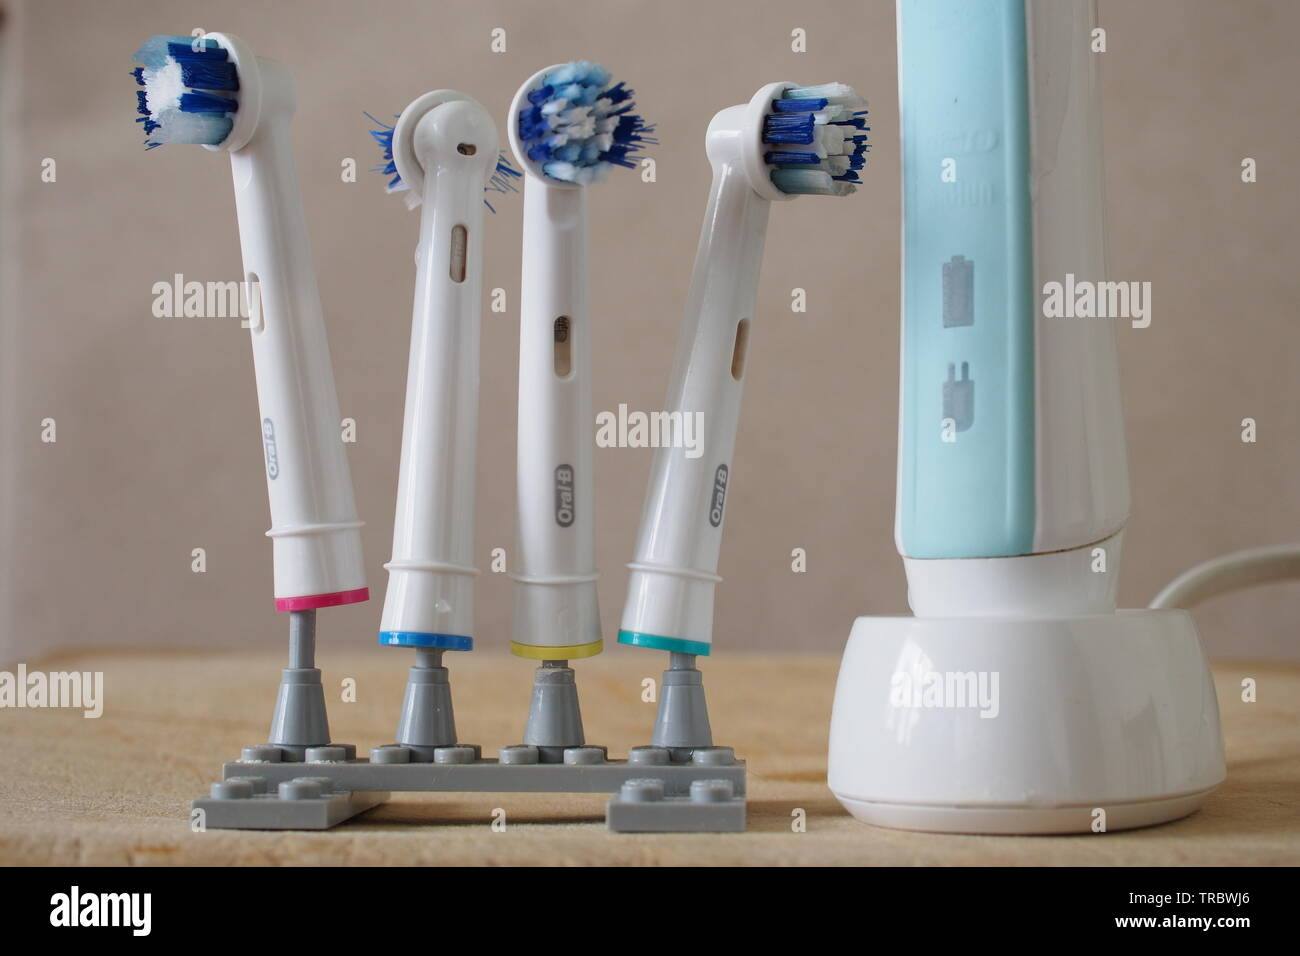 Four well-used electric toothbrush heads on a home-made Lego stand, next to a Braun electric toothbrush on its wireless rechargeable base. - Stock Image